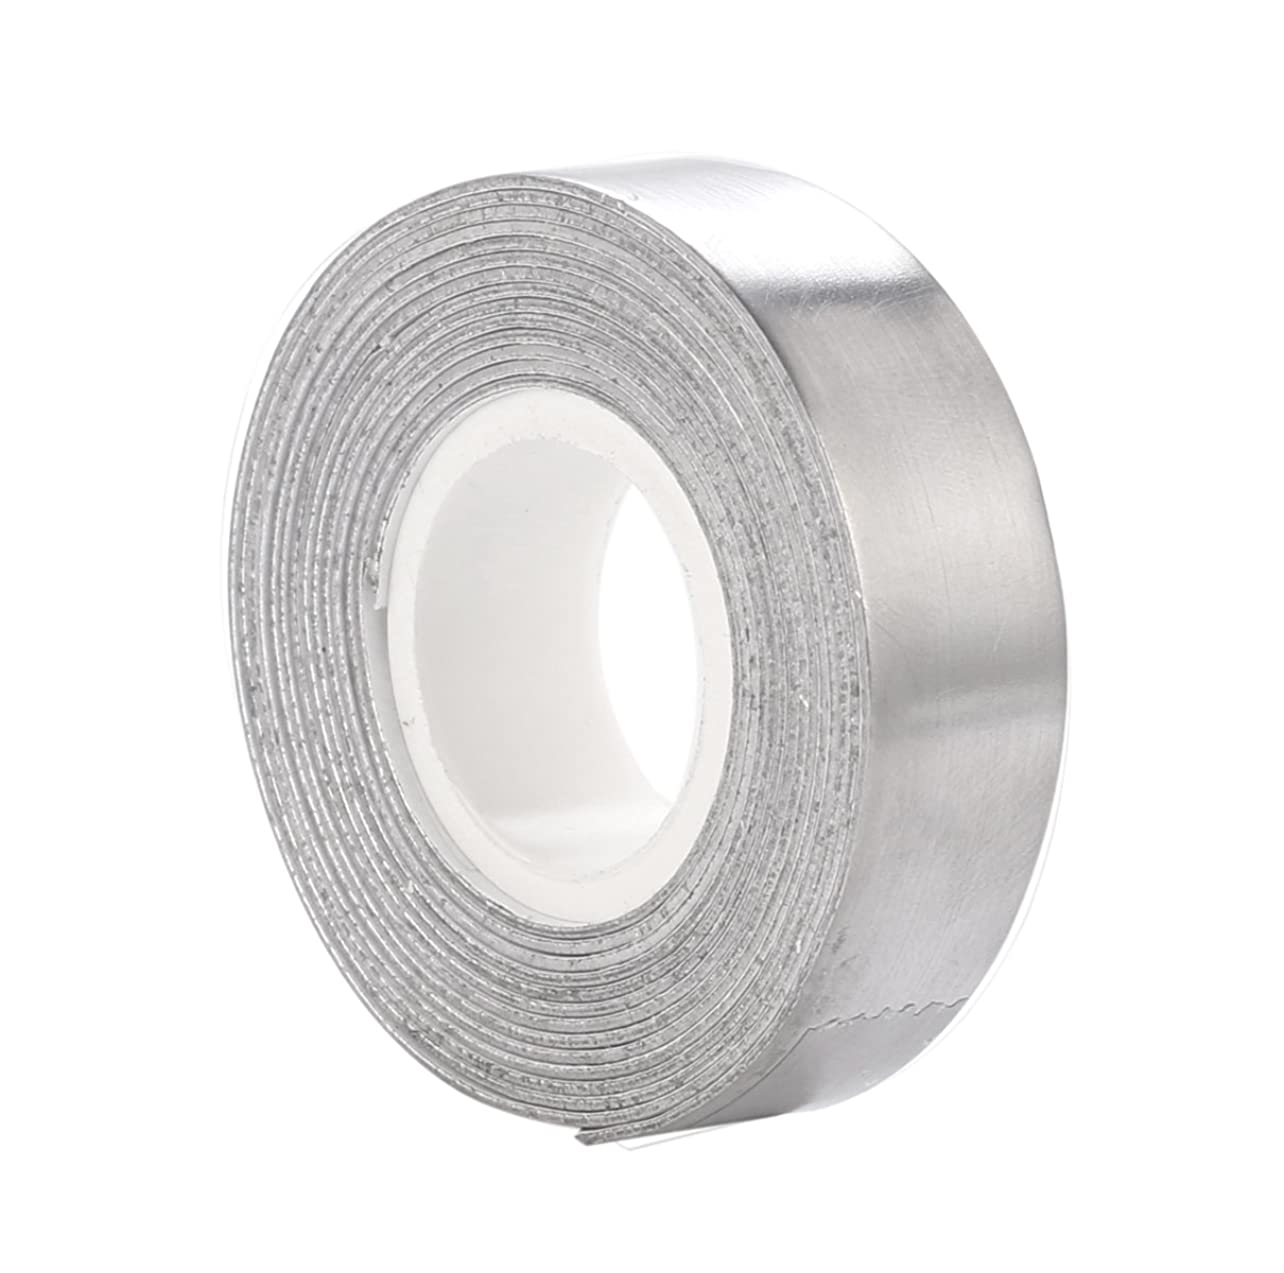 SummerHouse 2 Grams Per Inch High Density Golf Lead Tape 1/2'' x 100'' and 1/2'' x 60'' Available 0.025 Inch Thickness for Tennis and Fishing vqylzjvnclk45